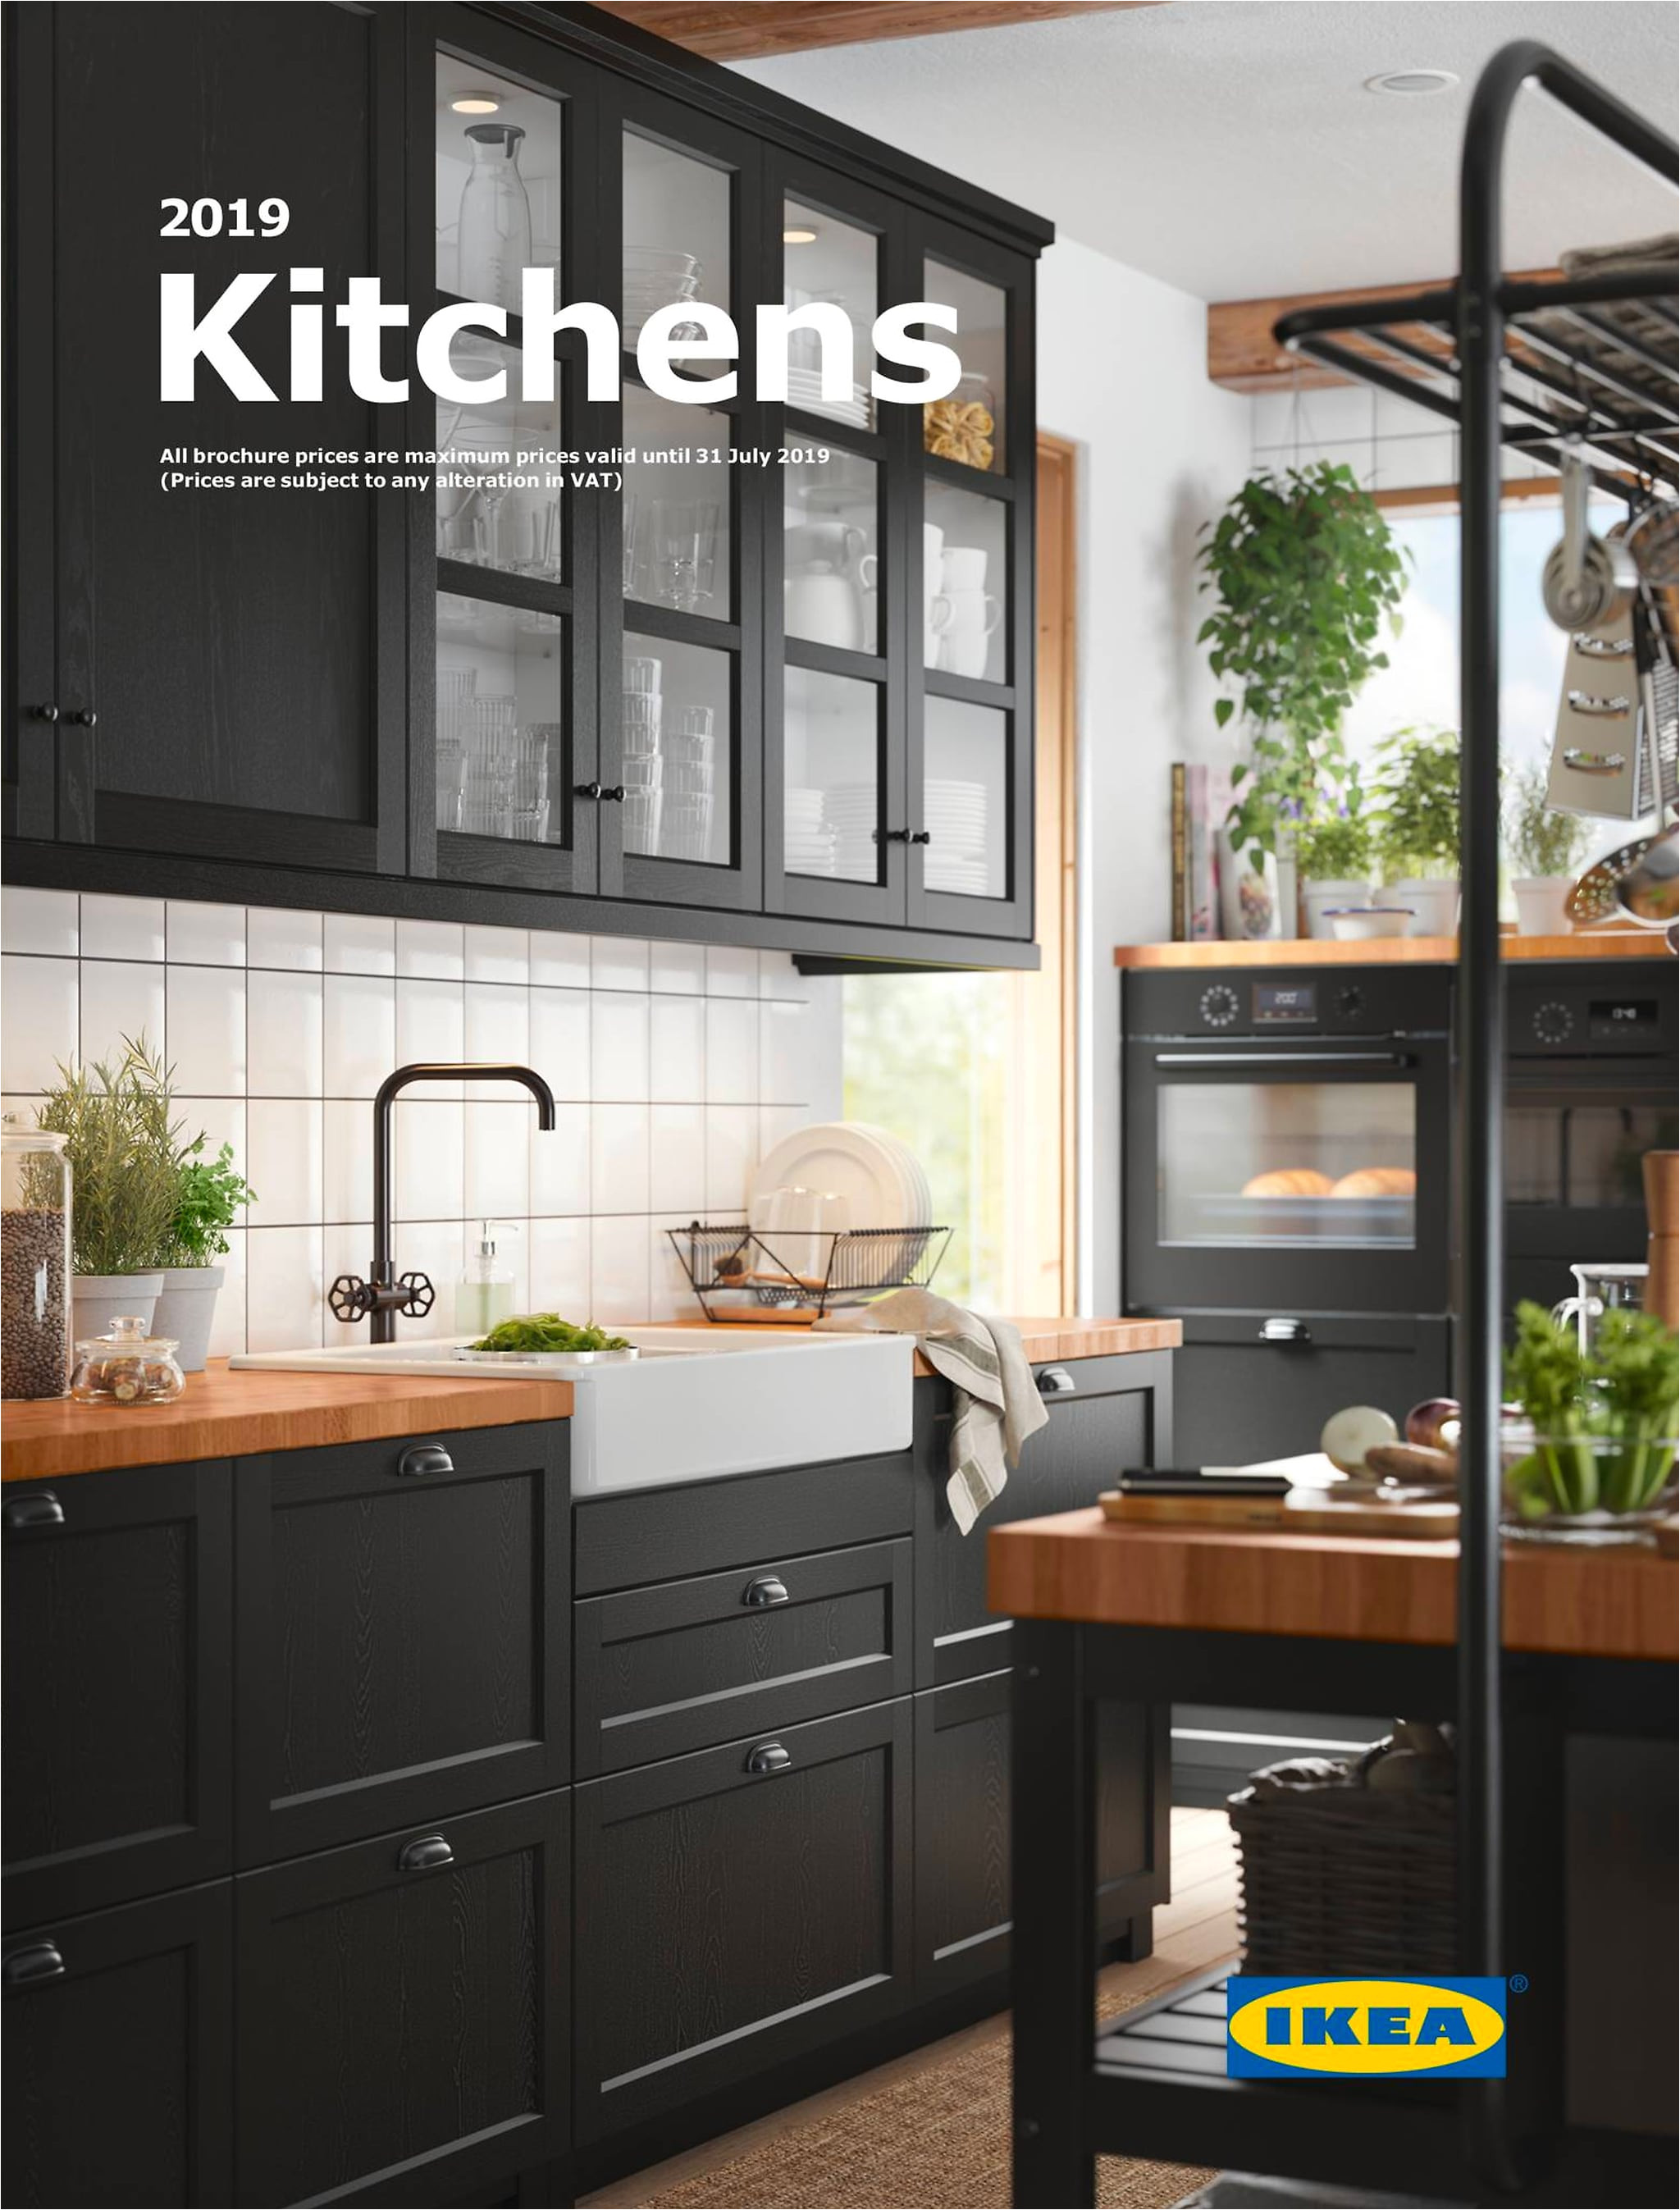 a black traditional kitchen with wooden worktop and a central isle